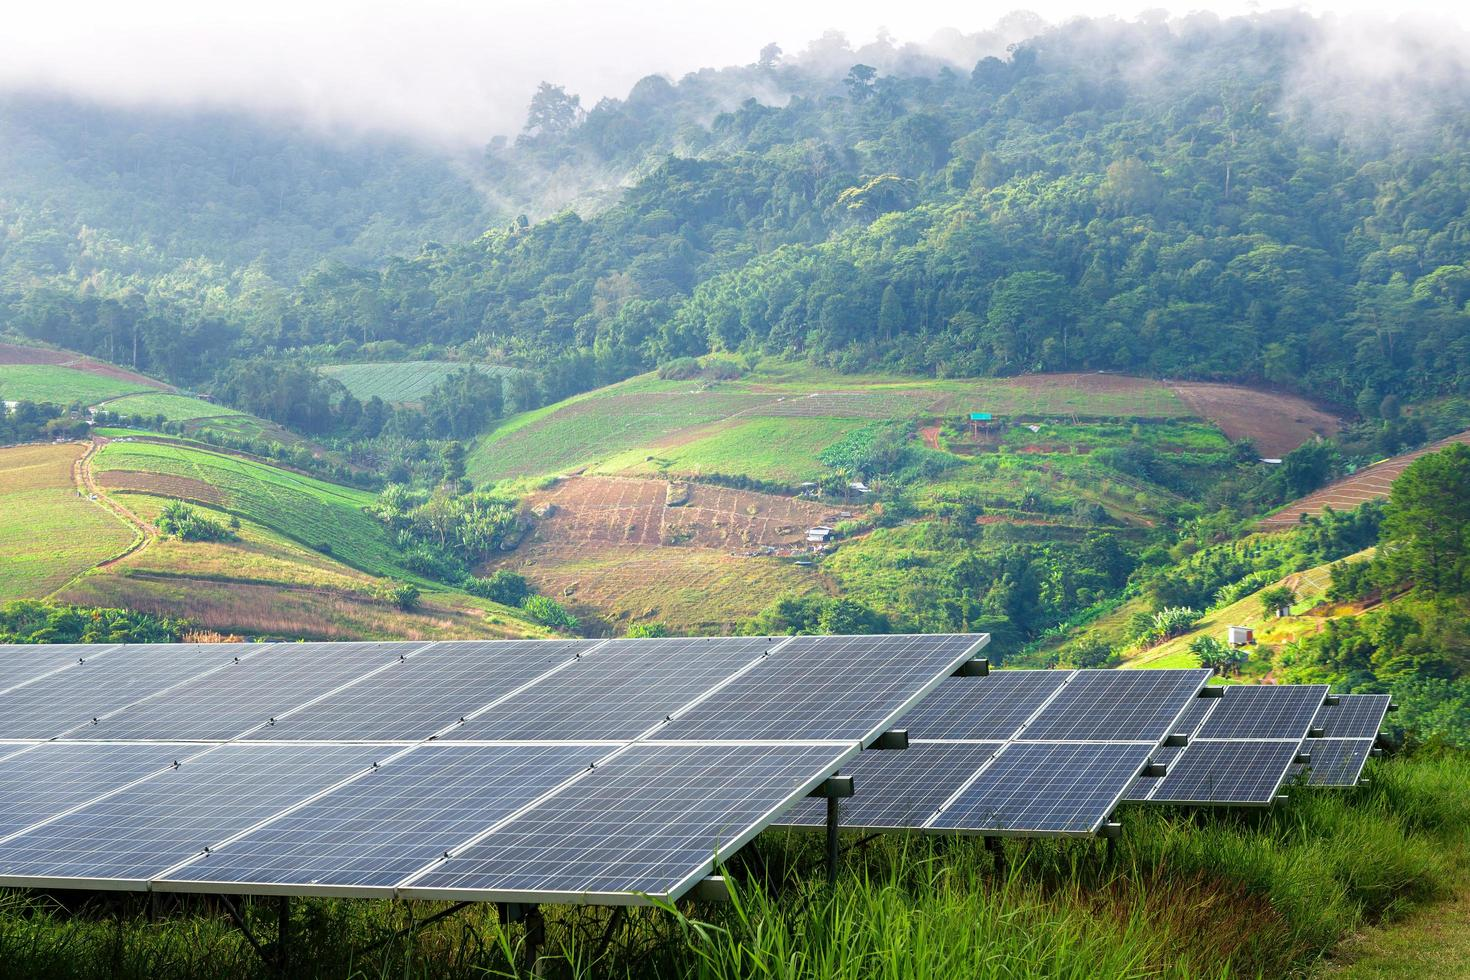 Solar panel field sits in foreground of lush foggy village photo